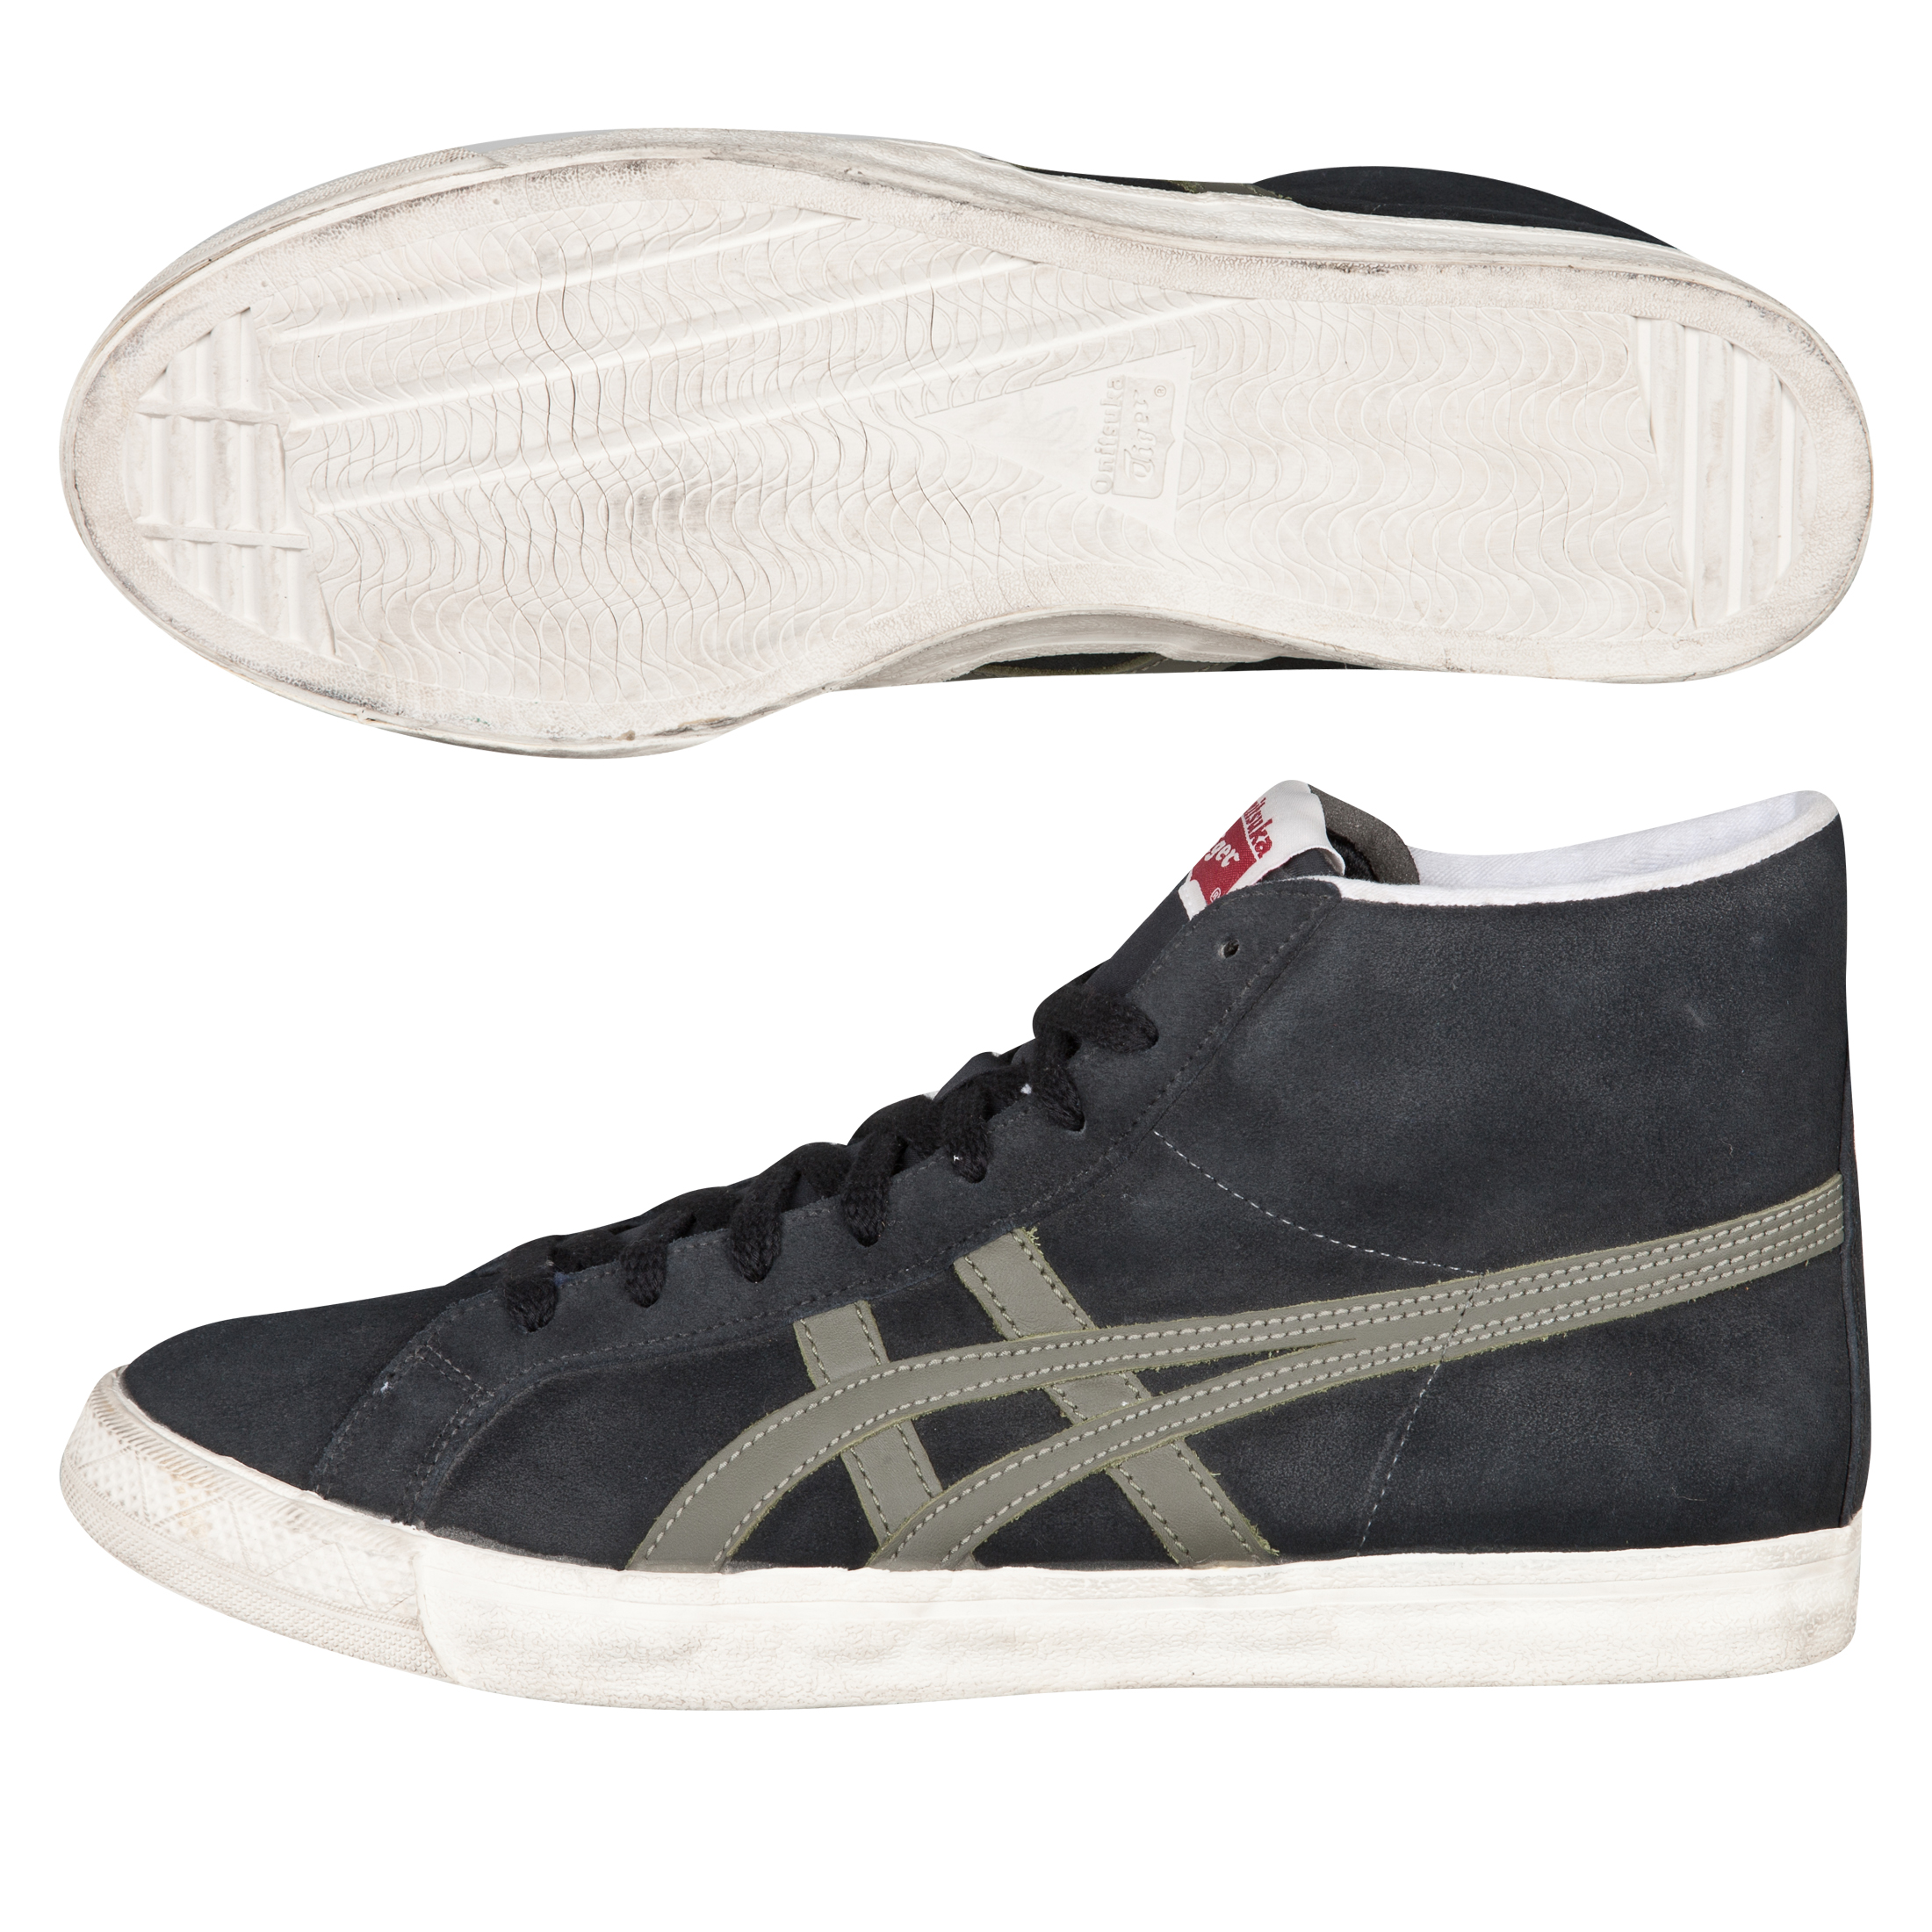 Onitsuka Tiger Fabre BL-L OG Vin Trainers - Black/Olive